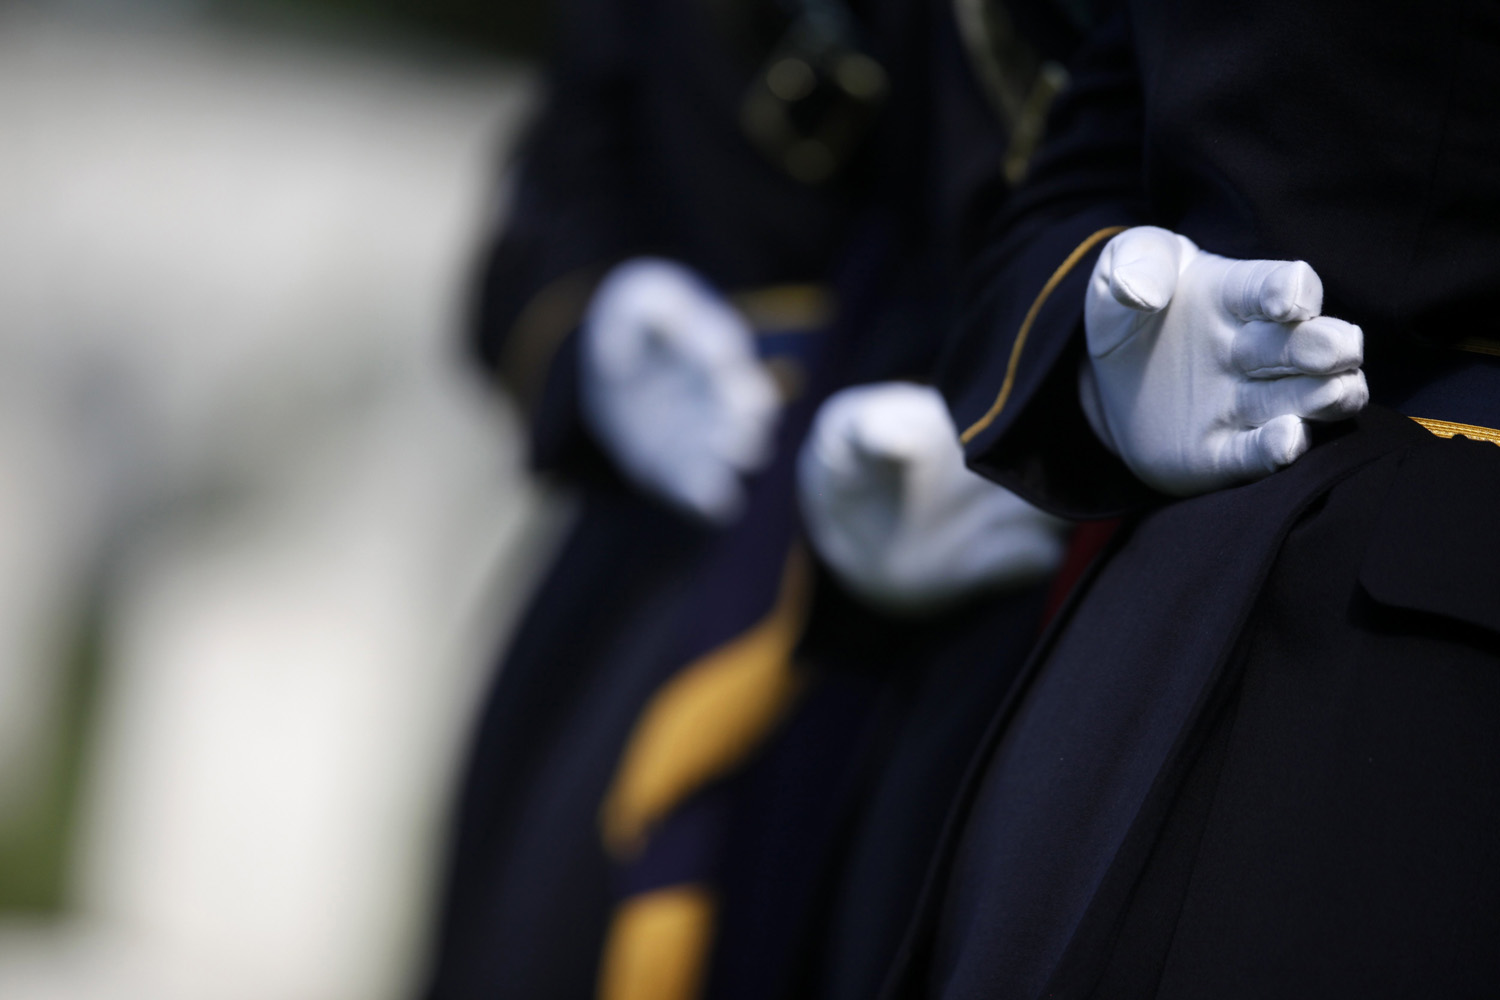 May 13, 2014. U.S. Army honor guard members stand at the gravesite of Army Pvt. William Christman, who was the first military burial at the cemetery, marking the beginning of commemorations of the 150th anniversary of Arlington National Cemetery in Arlington, Va.